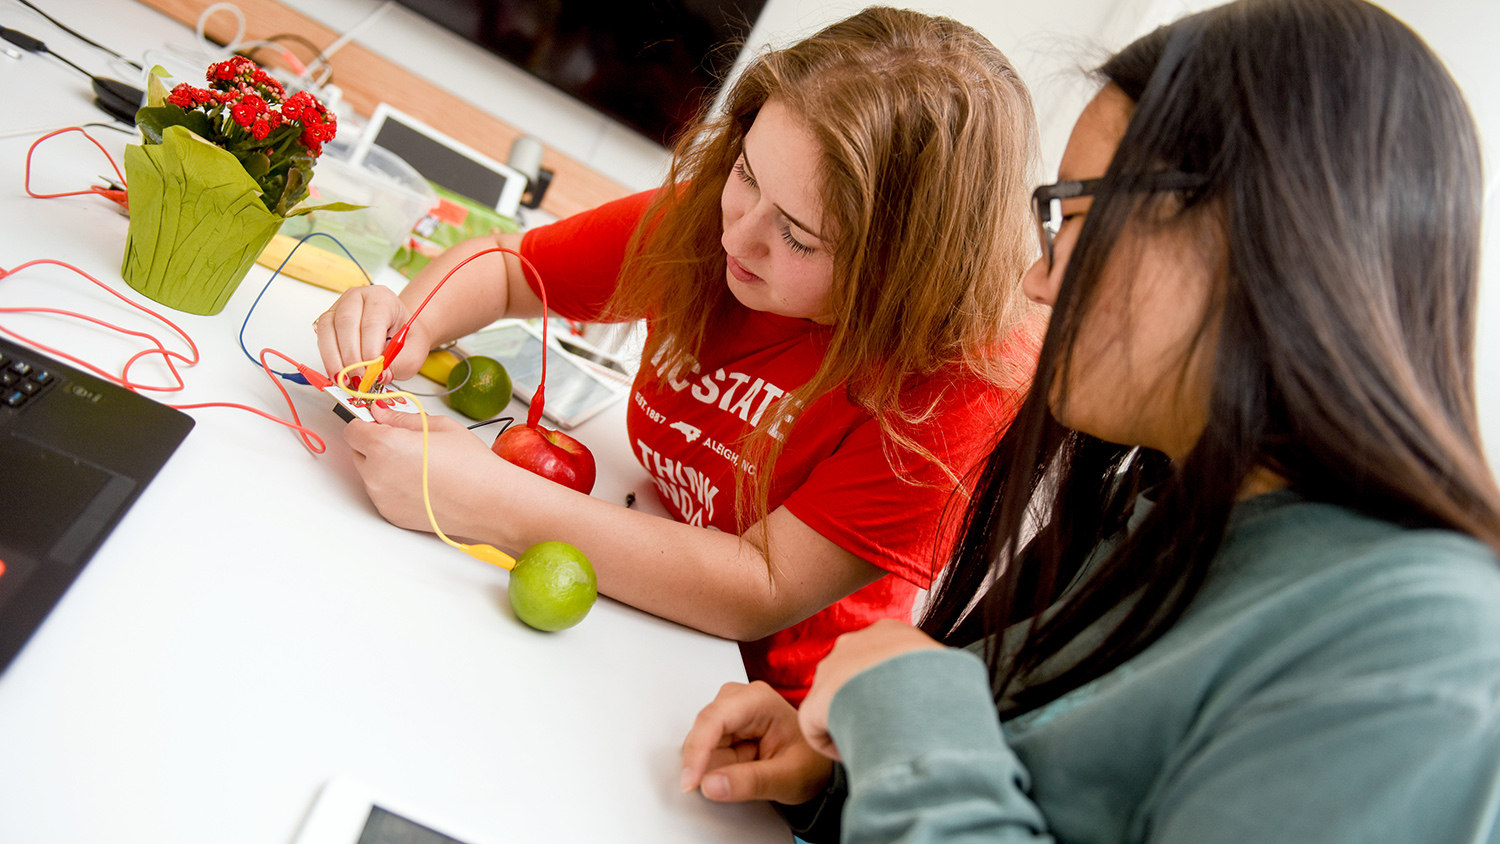 Students in METRC doing an experiment with apples.